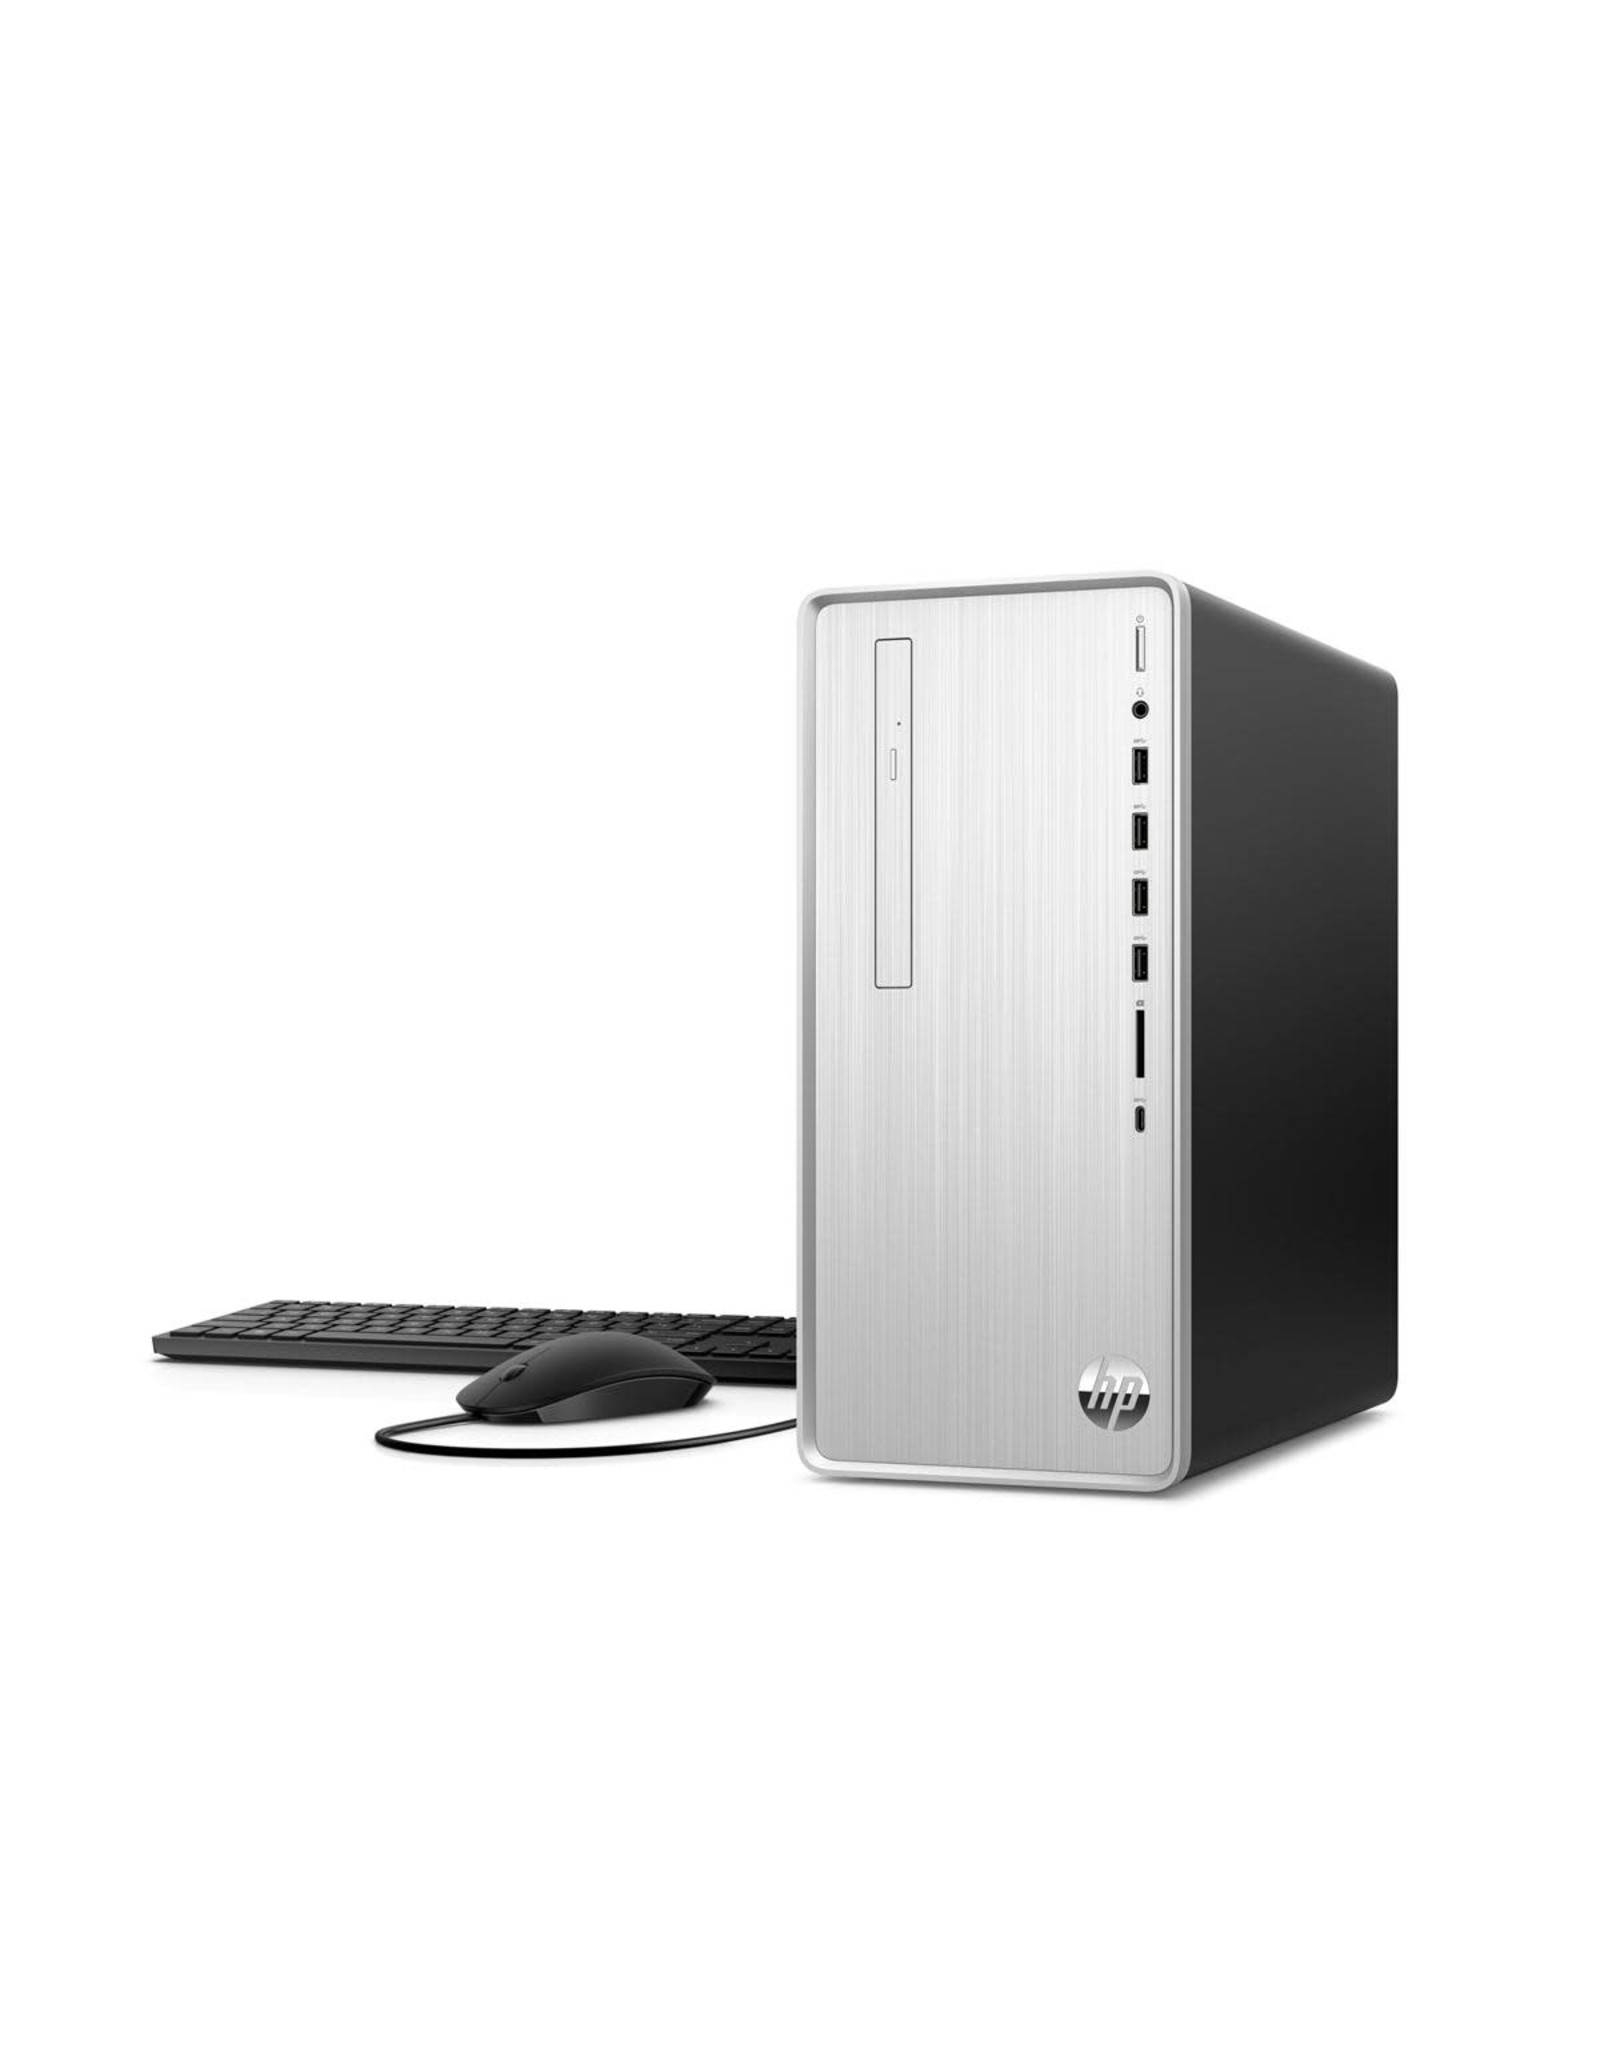 HP Desktop - HP Pavilion - AMD Ryzen 3200g - 8GB DDR4 - 1TB SATA HDD - 256GB PCIe SSD - Wifi - Bluetooth